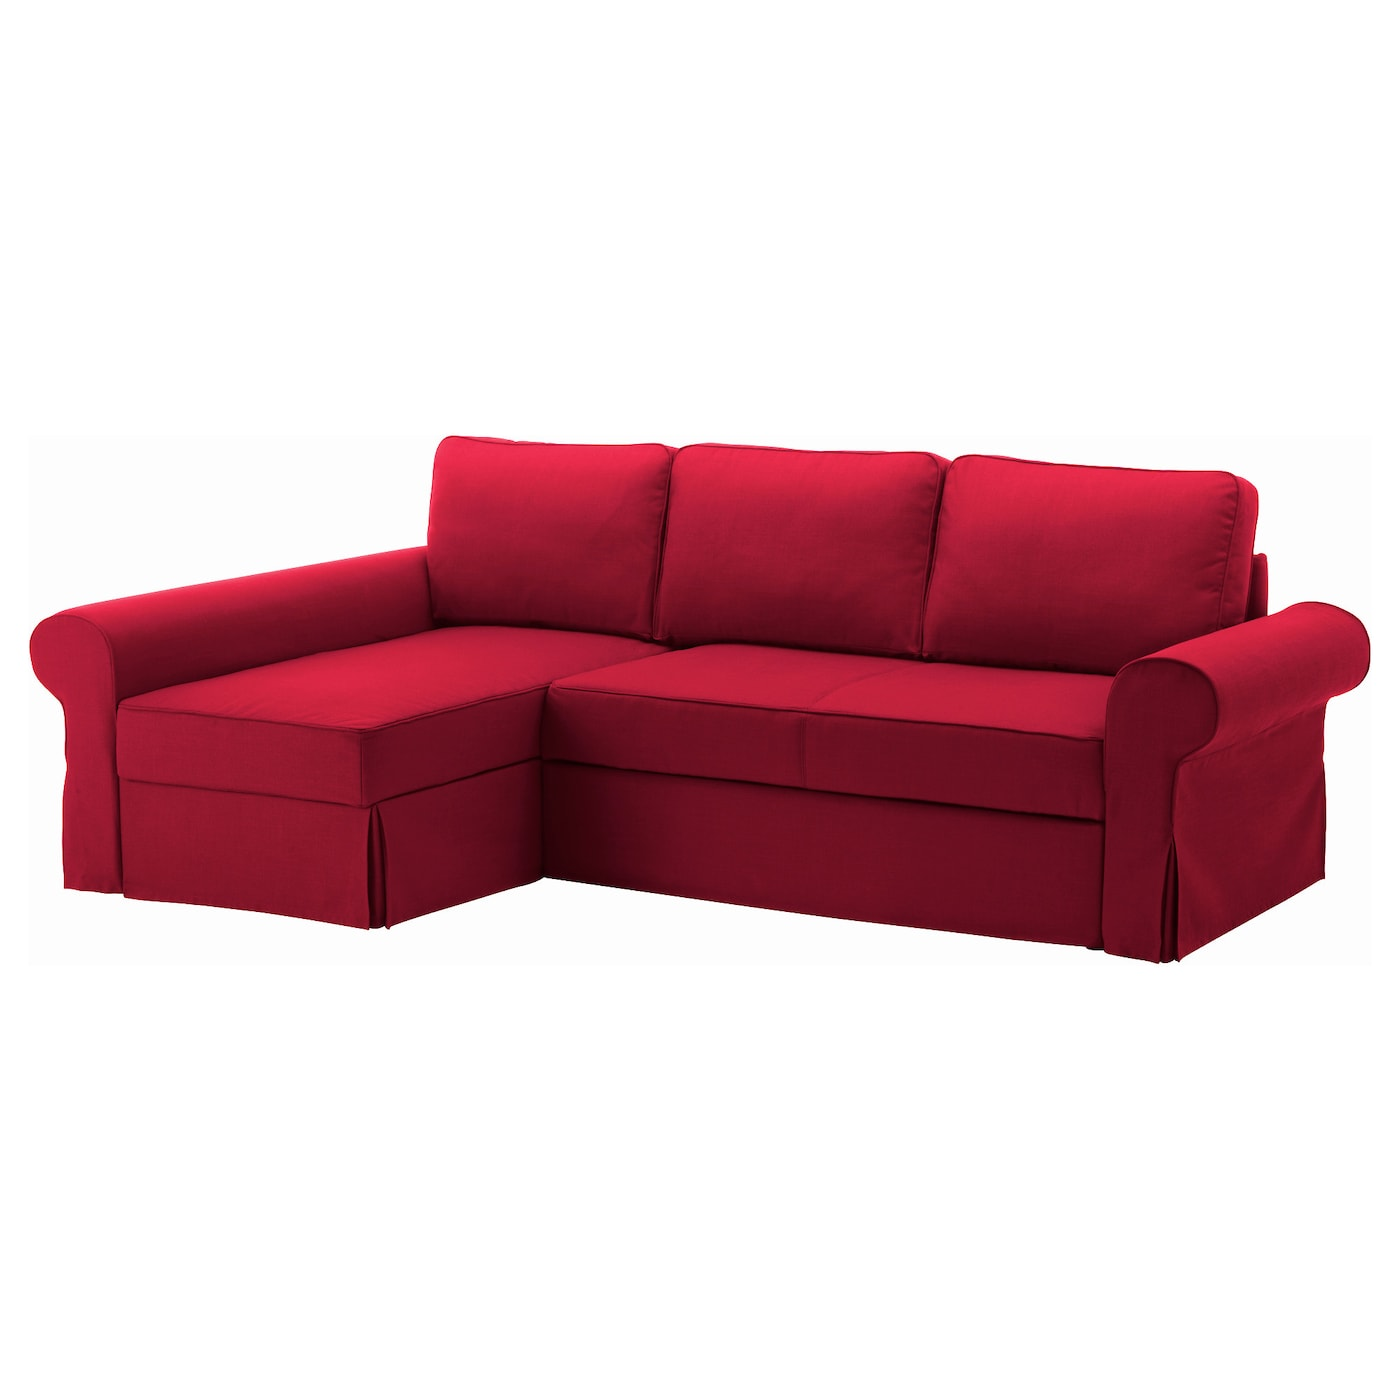 Backabro sofa bed with chaise longue nordvalla red ikea for Chaise lounge convertible bed